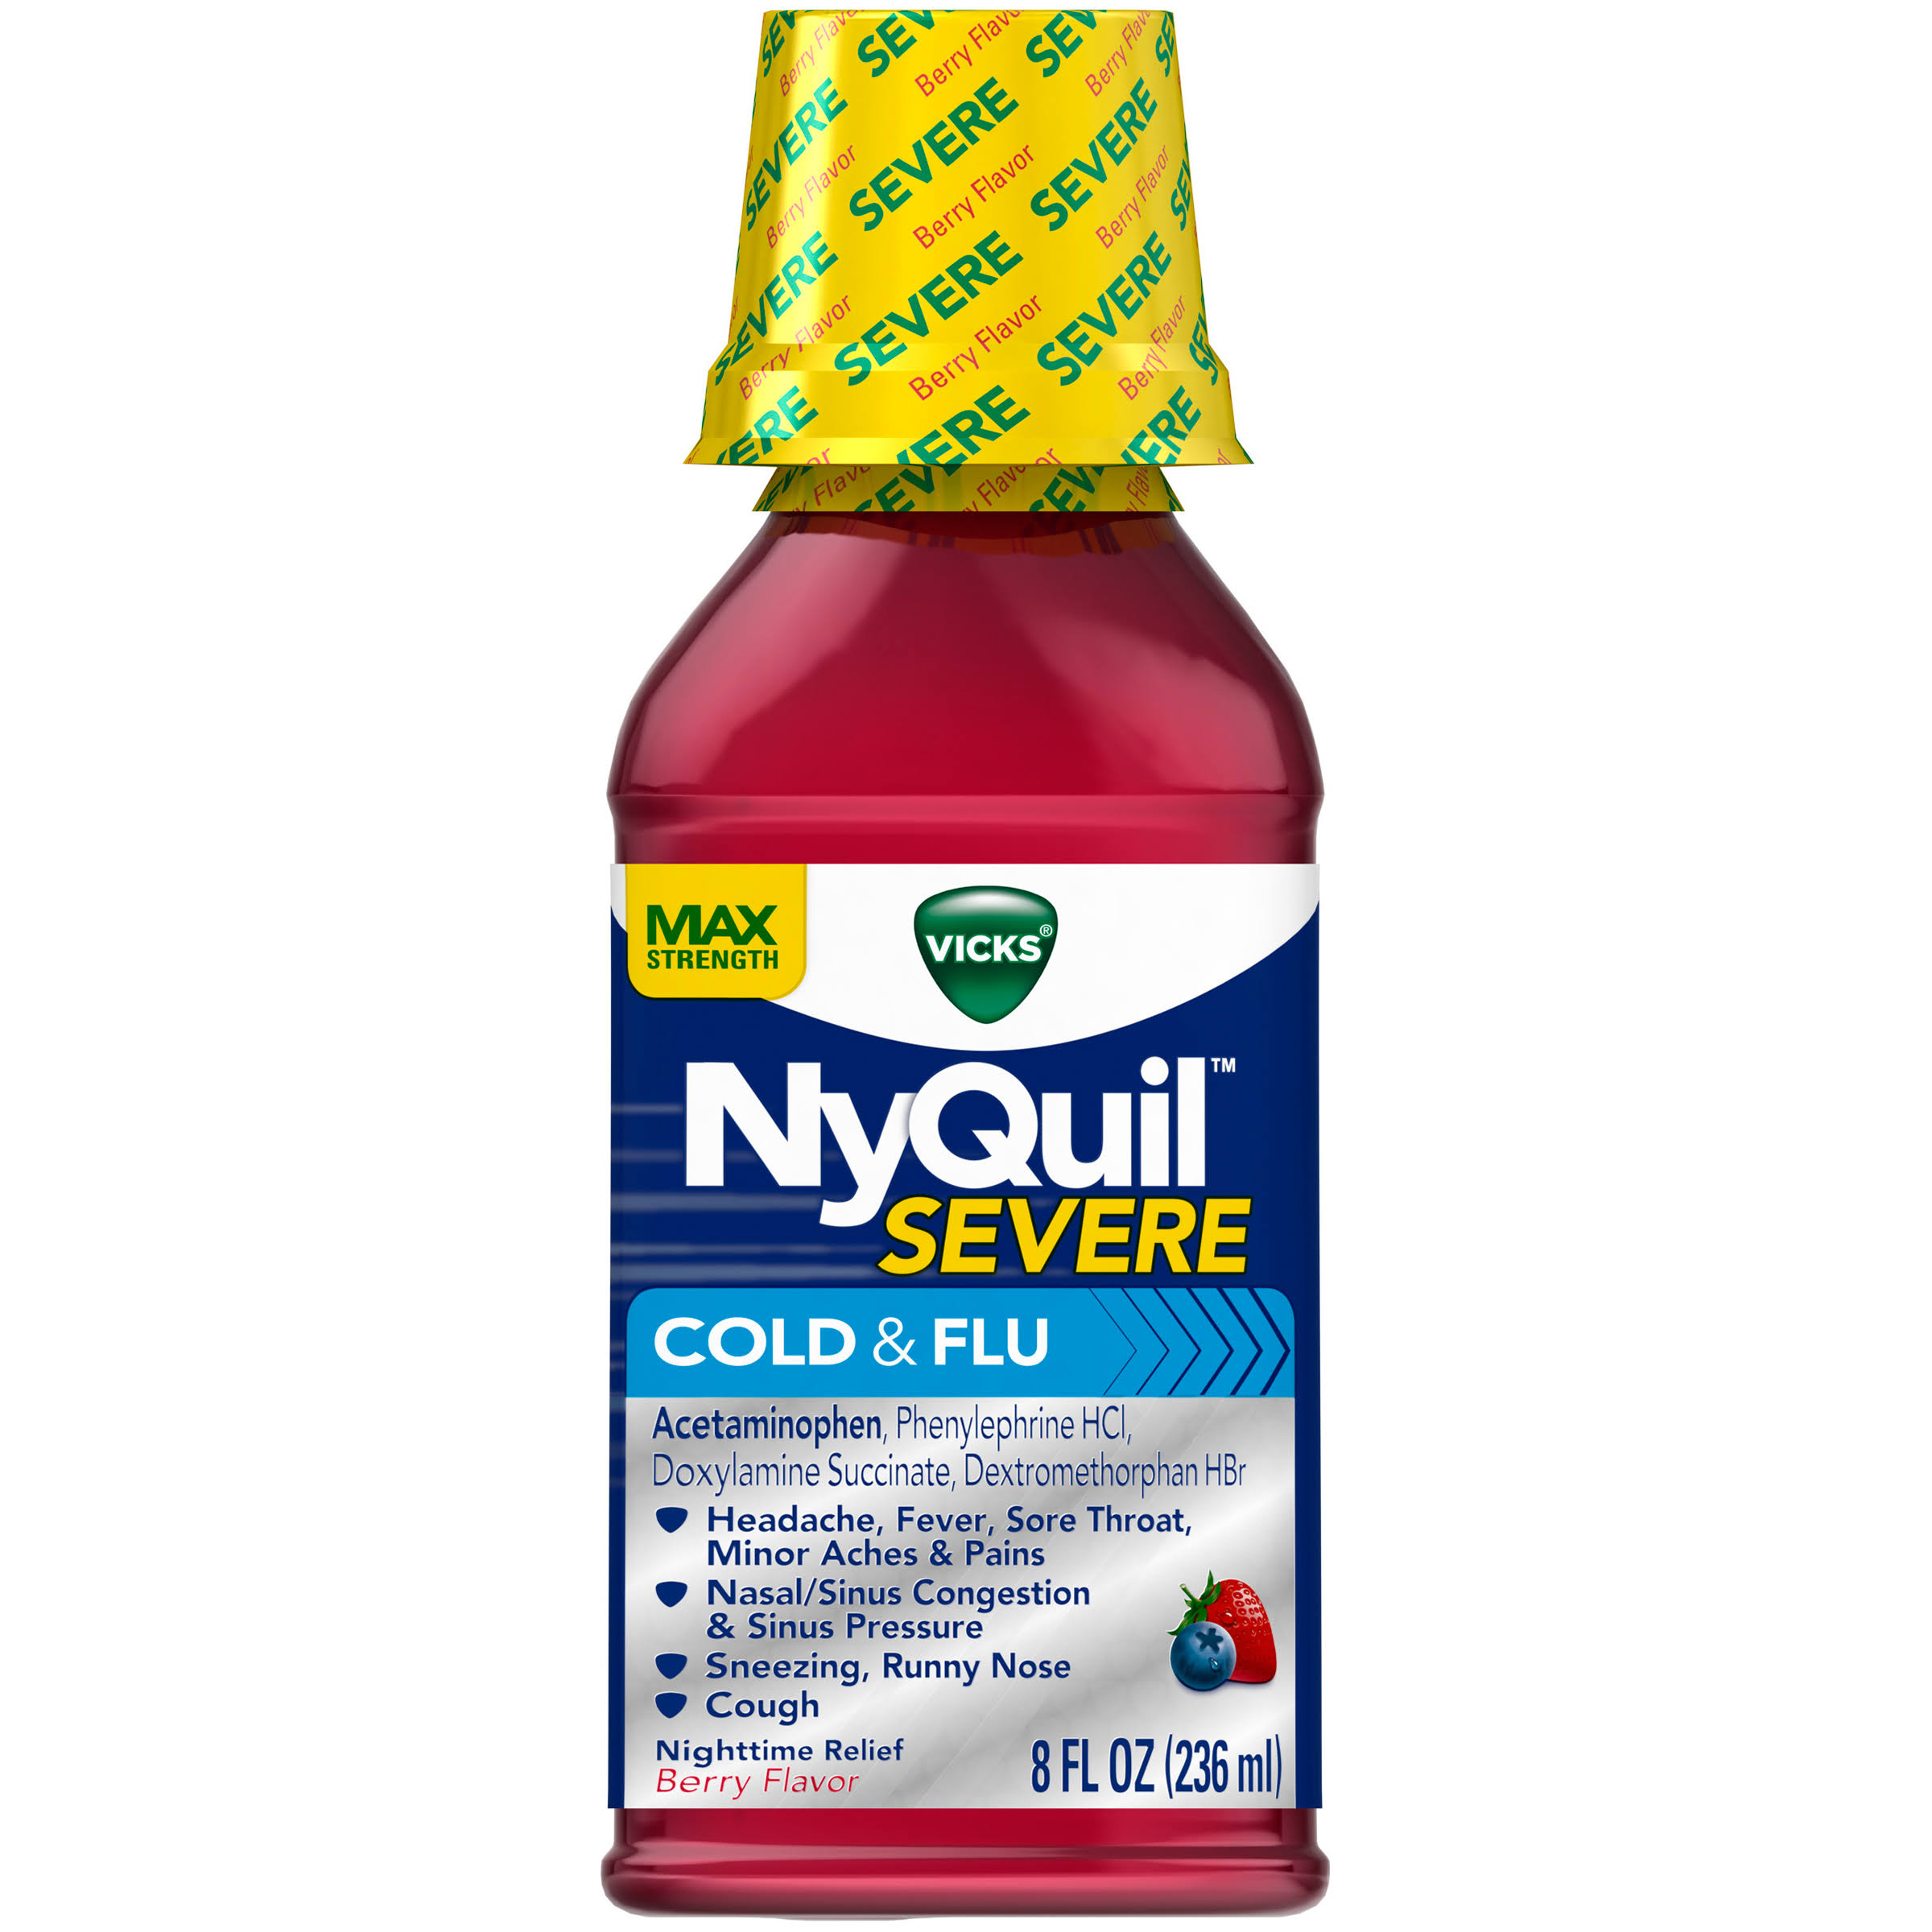 Vicks NyQuil Severe Cold and Flu Nighttime Liquid Relief - Berry, 8oz